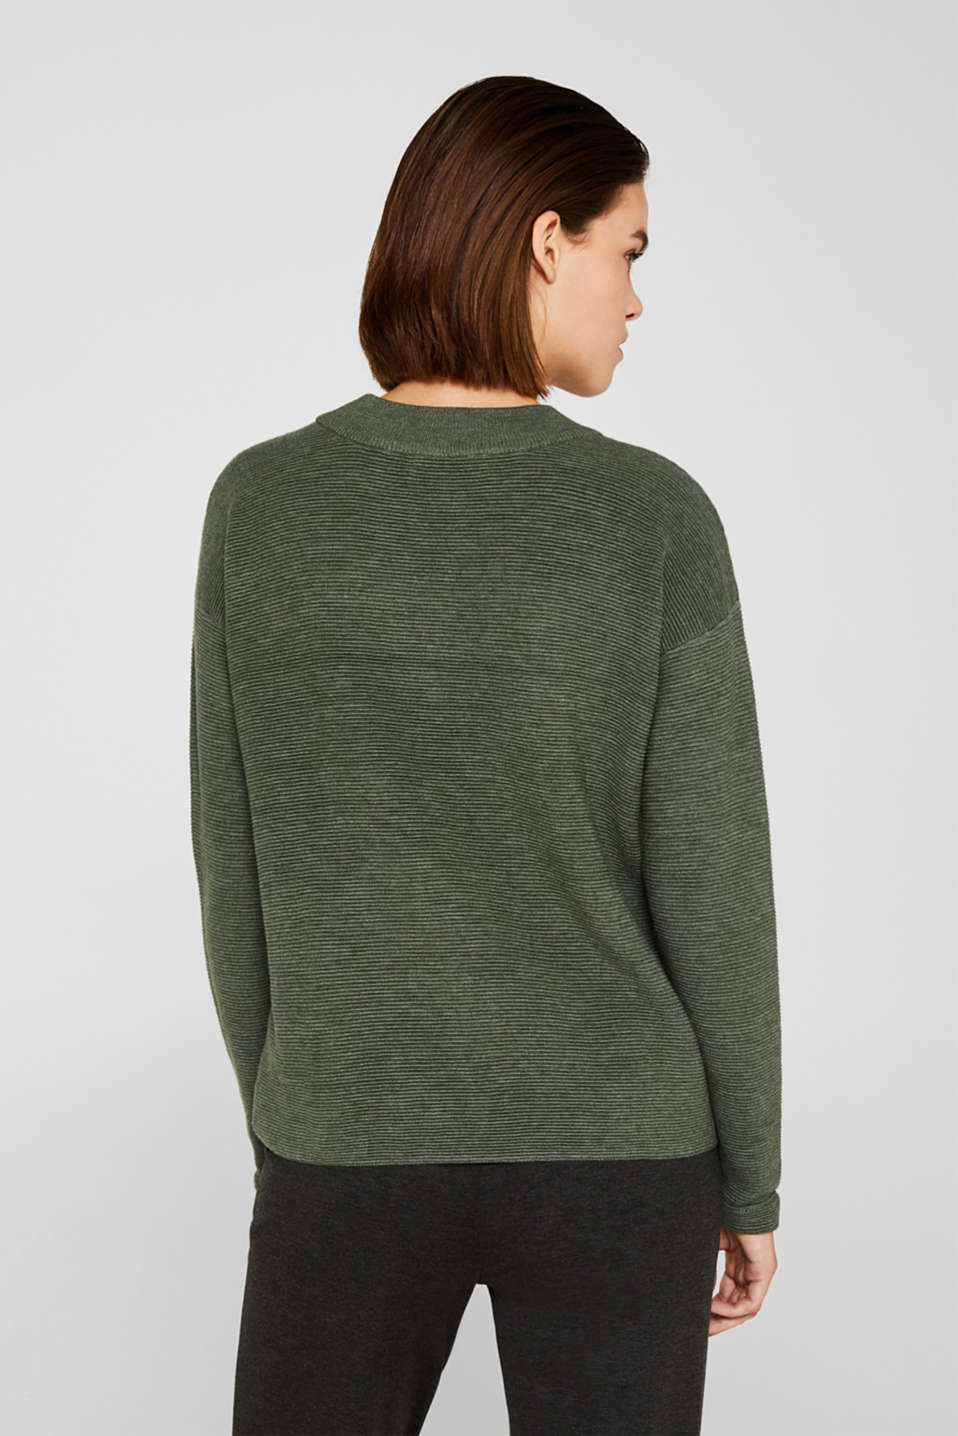 Jumper with a ribbed texture, KHAKI GREEN 5, detail image number 3